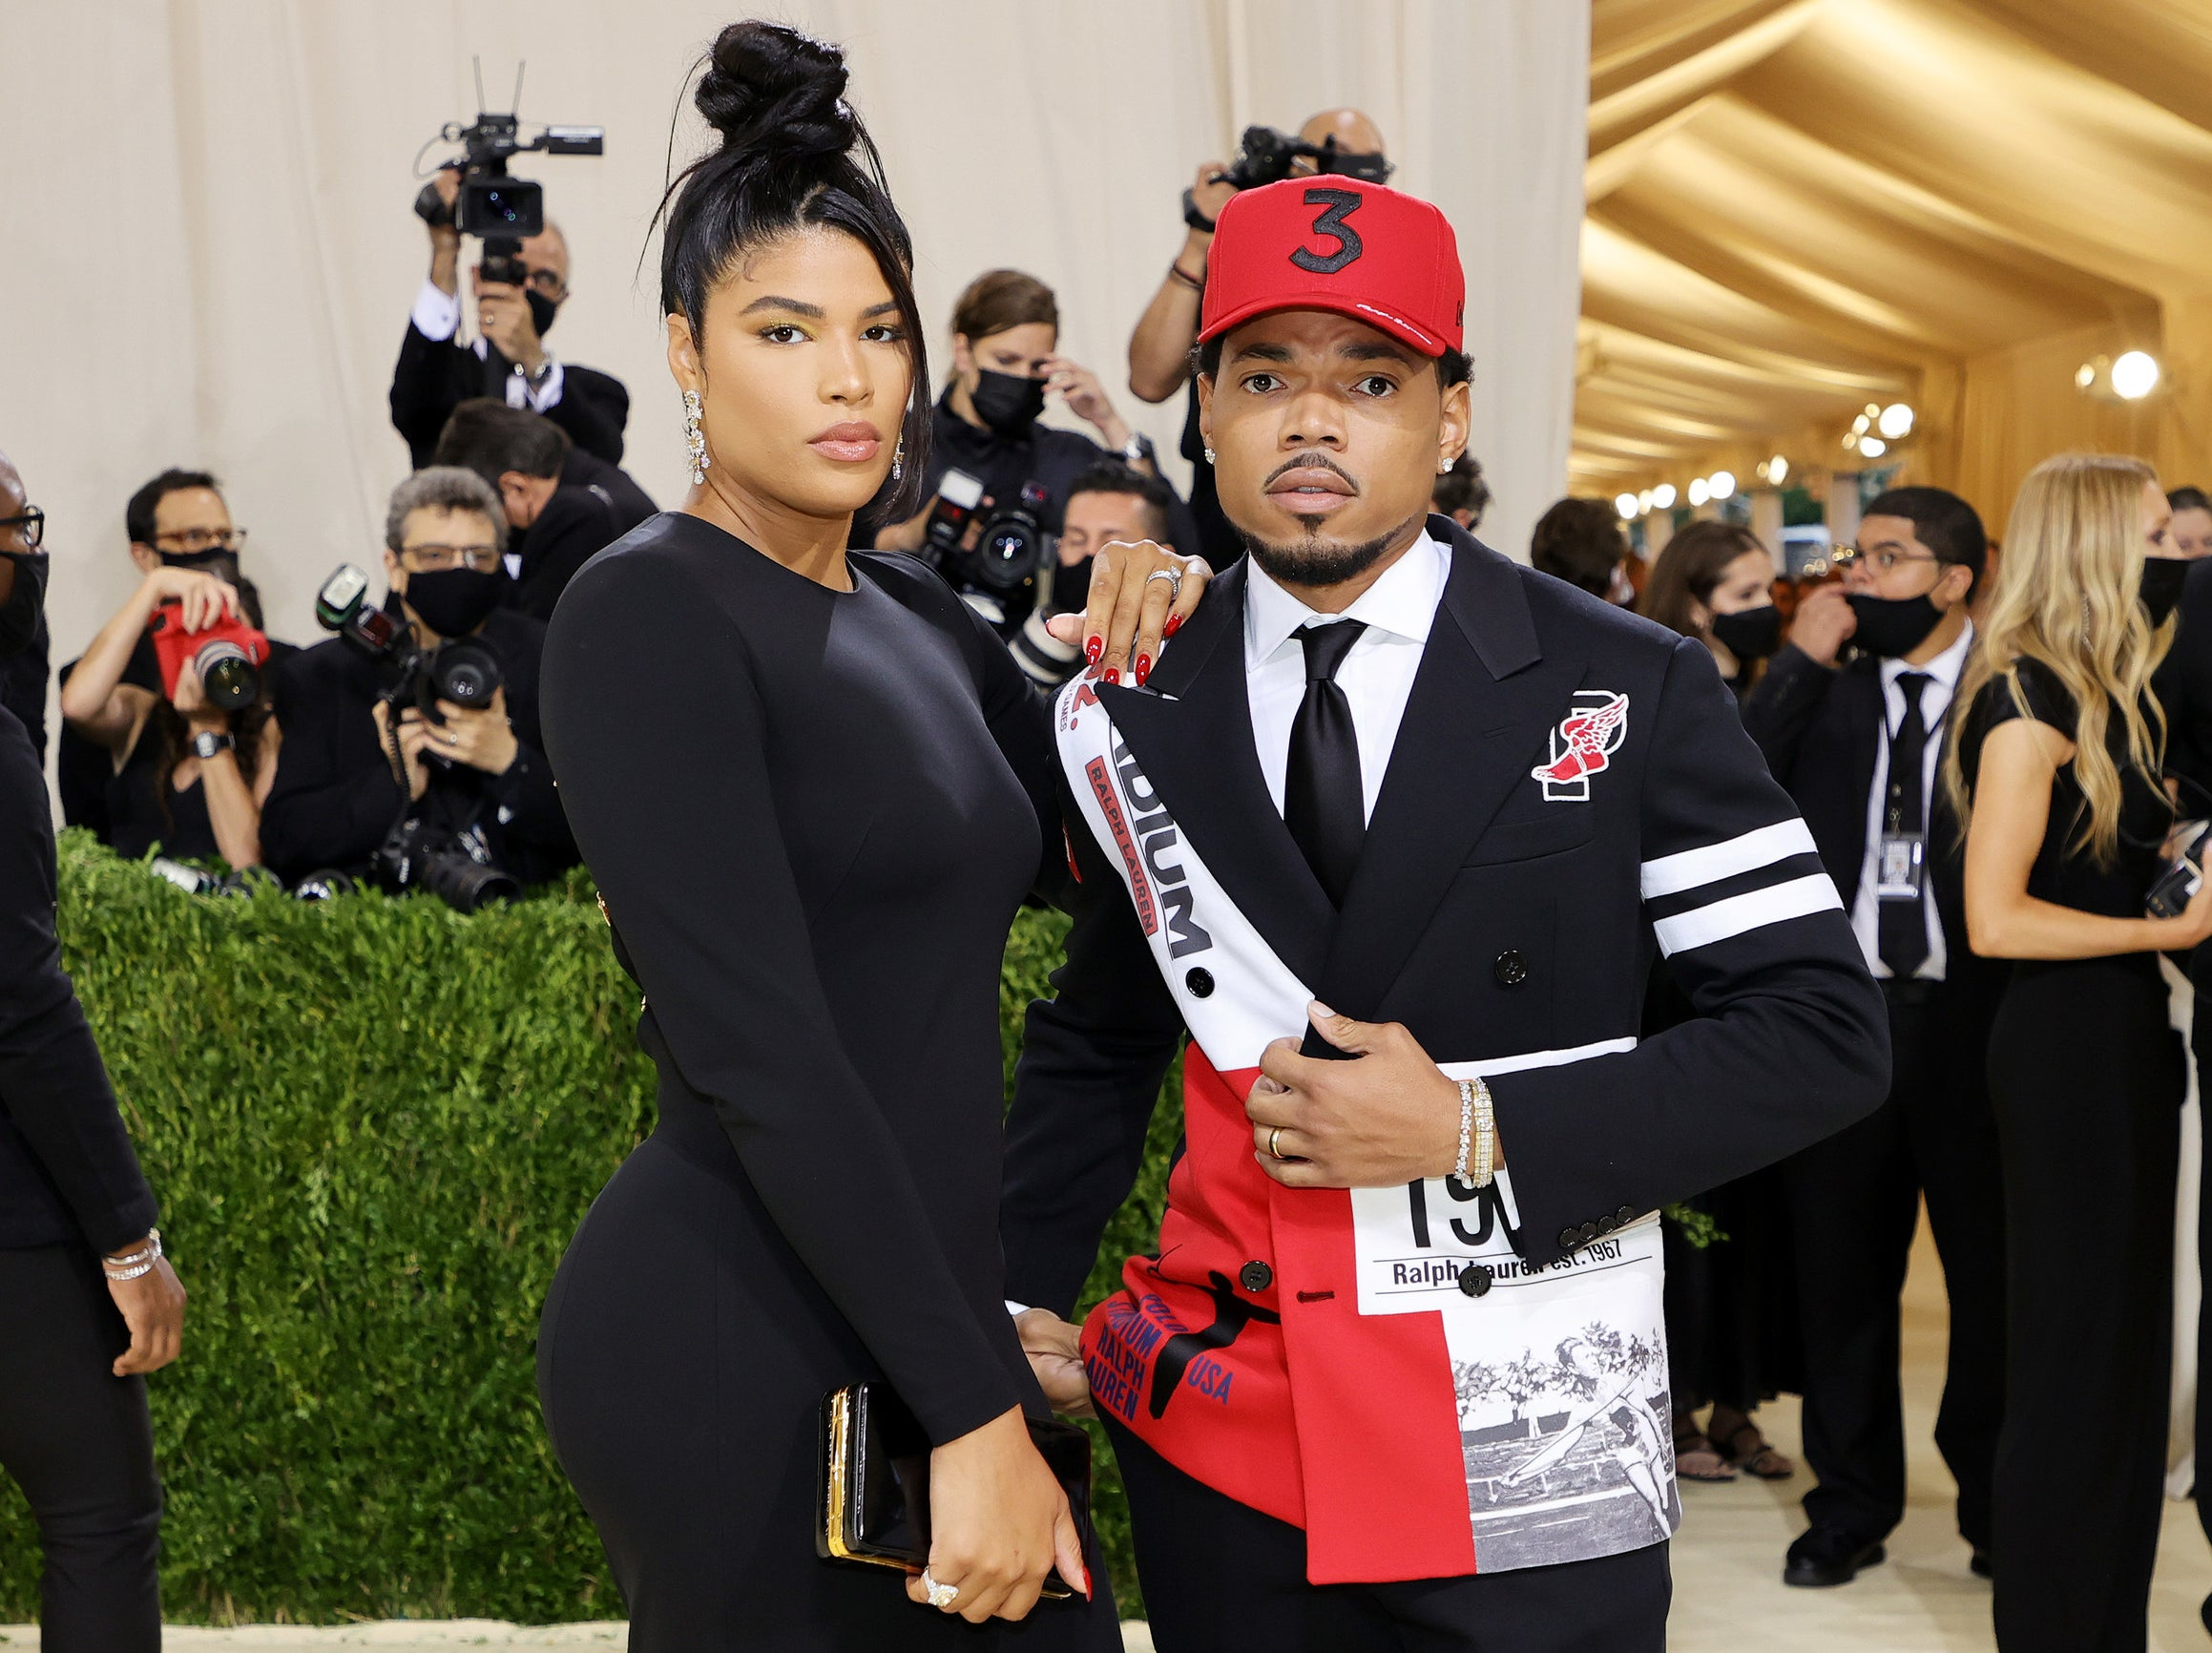 Kirsten Corley and Chance the Rapper attend The 2021 Met Gala Celebrating In America: A Lexicon Of Fashion